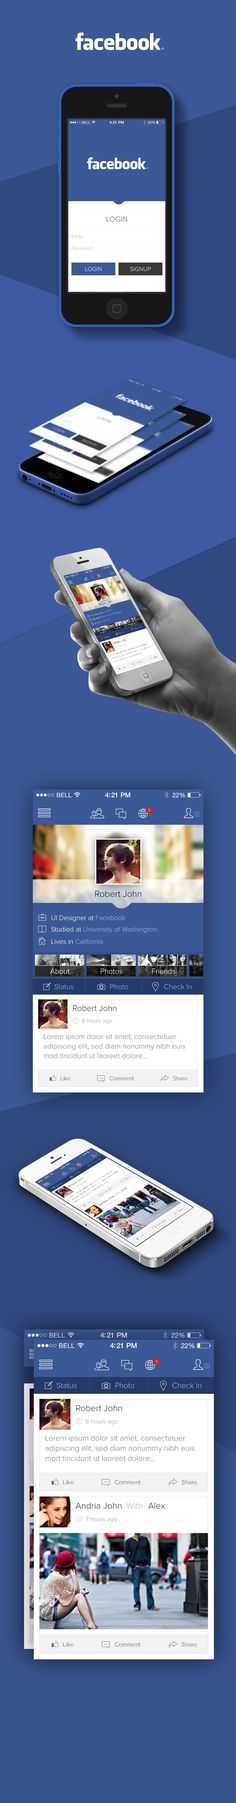 Facebook iOS7 Redesign via @Behance - http://www.behance.net/gallery/Facebook-iOS-7-Redesign-Concept/12073751